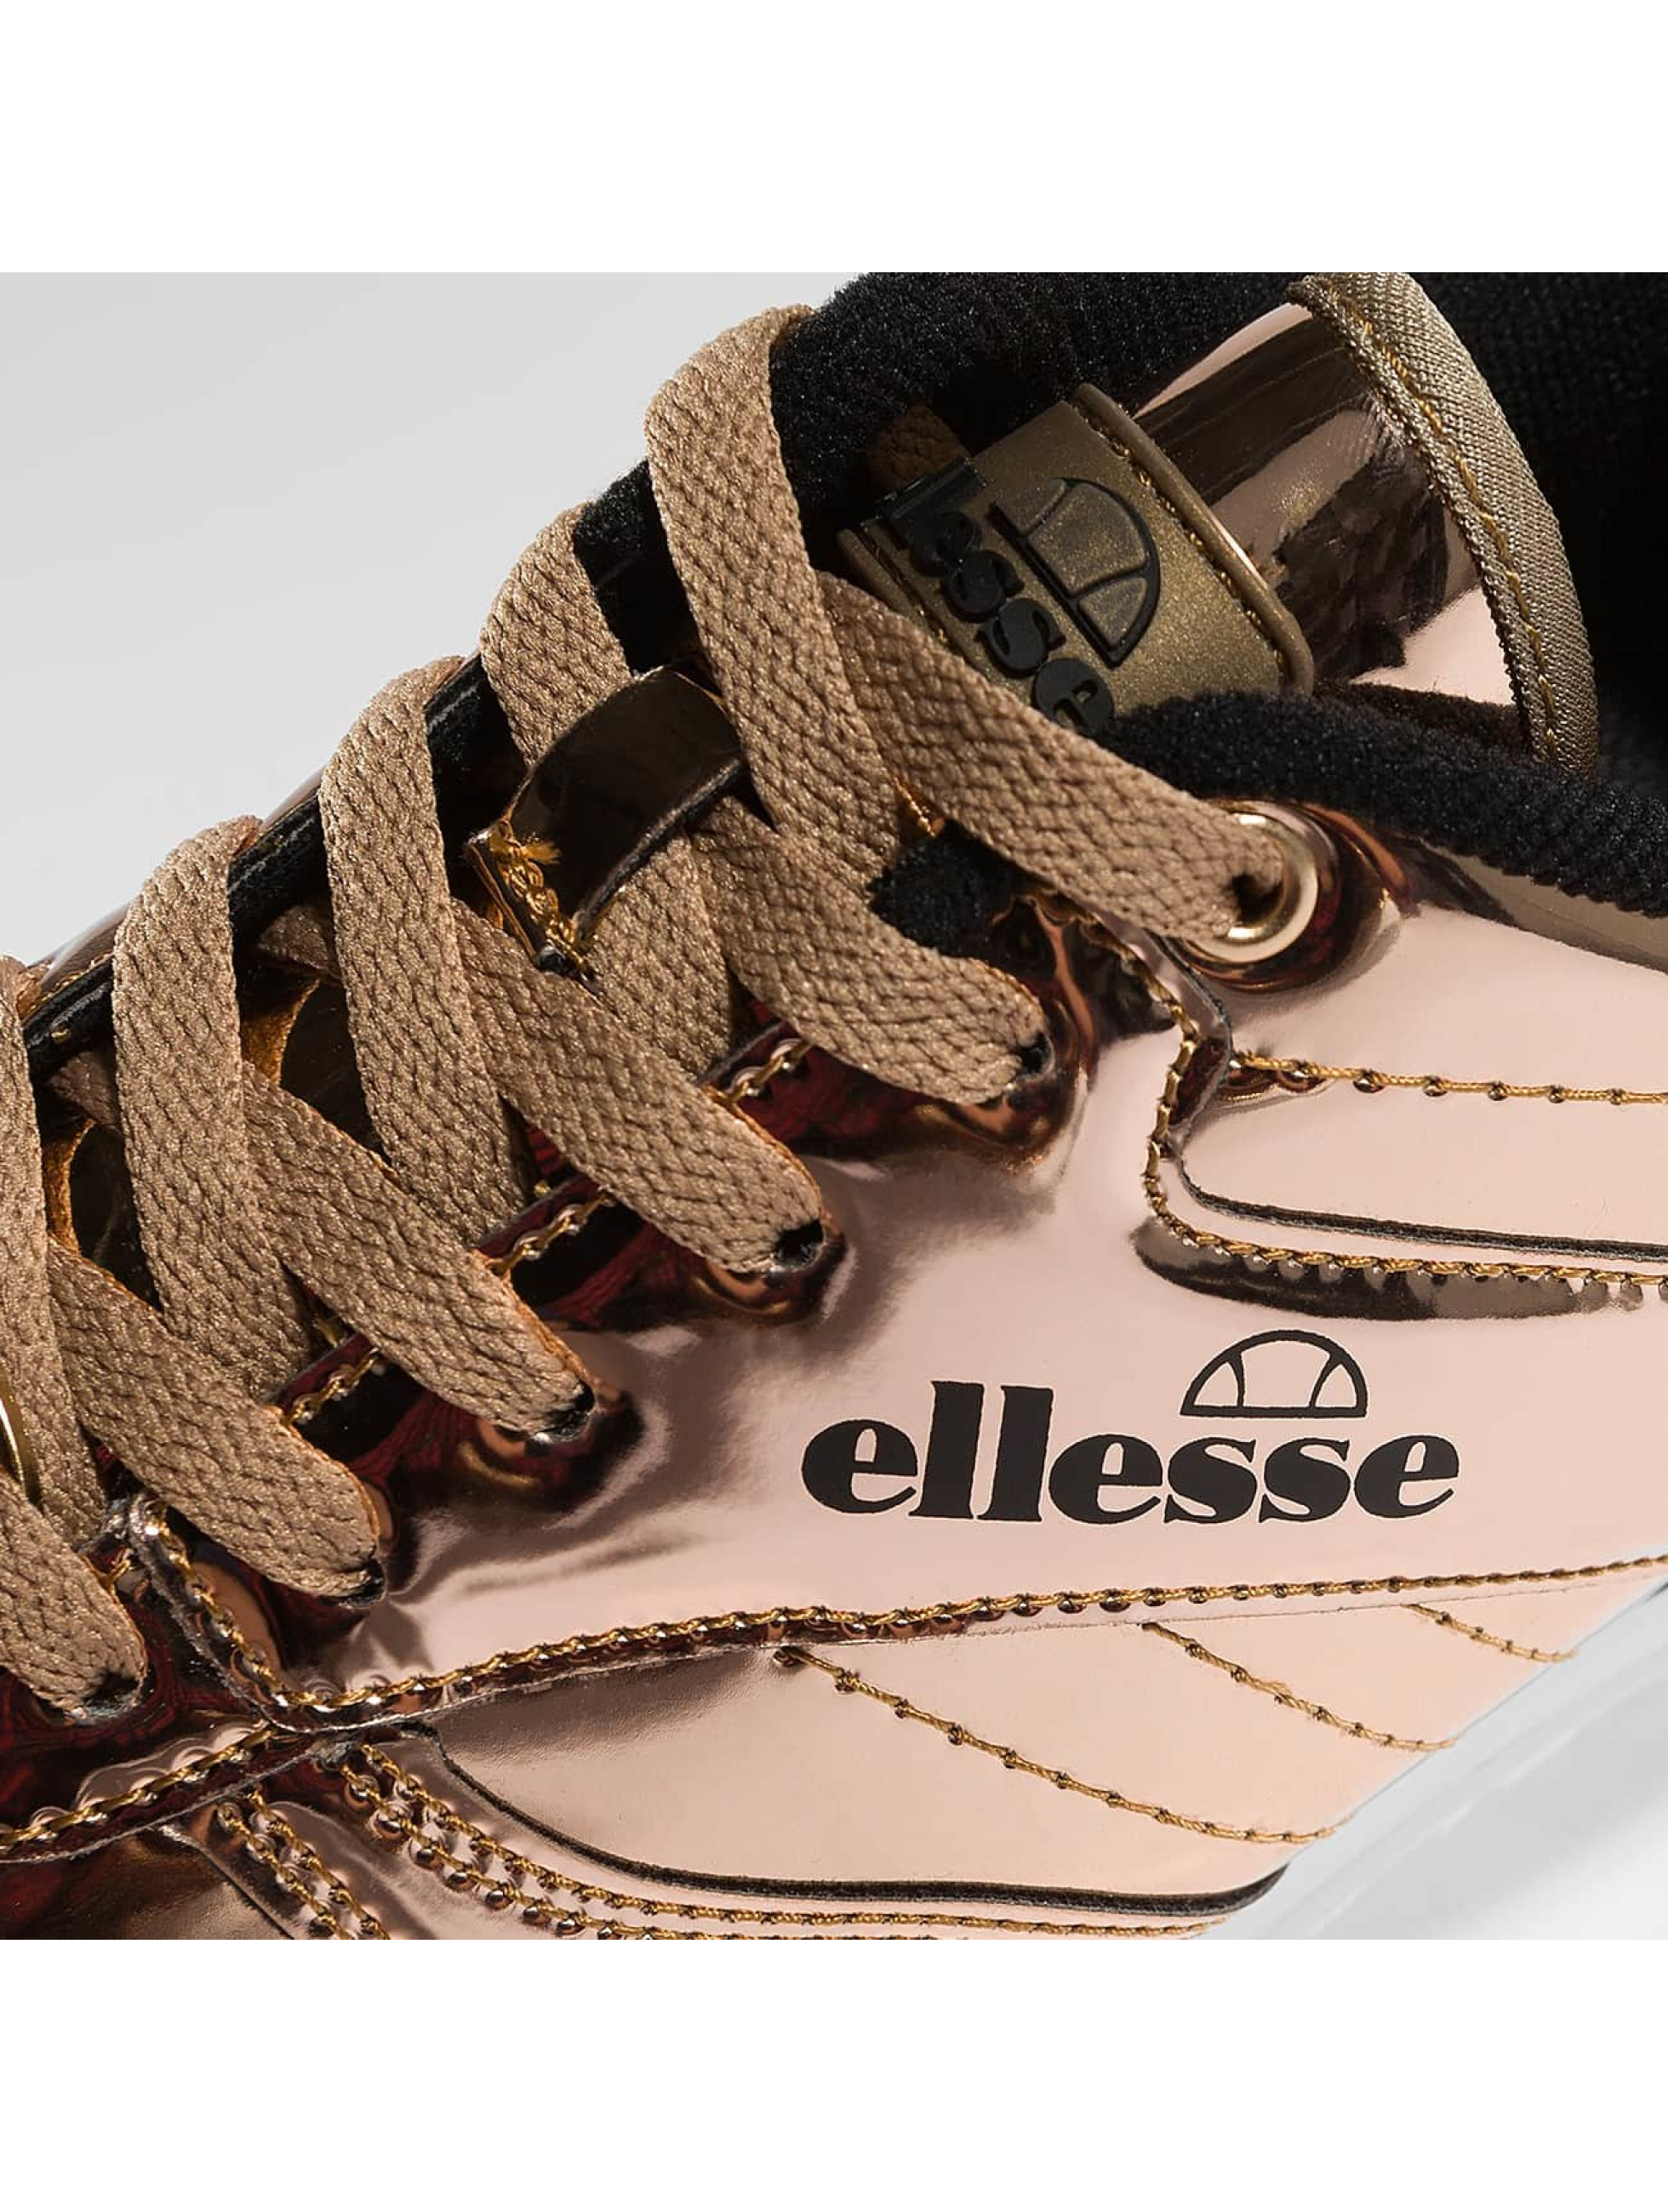 Ellesse Sneakers Heritage City Runner Metallic Runner gold colored